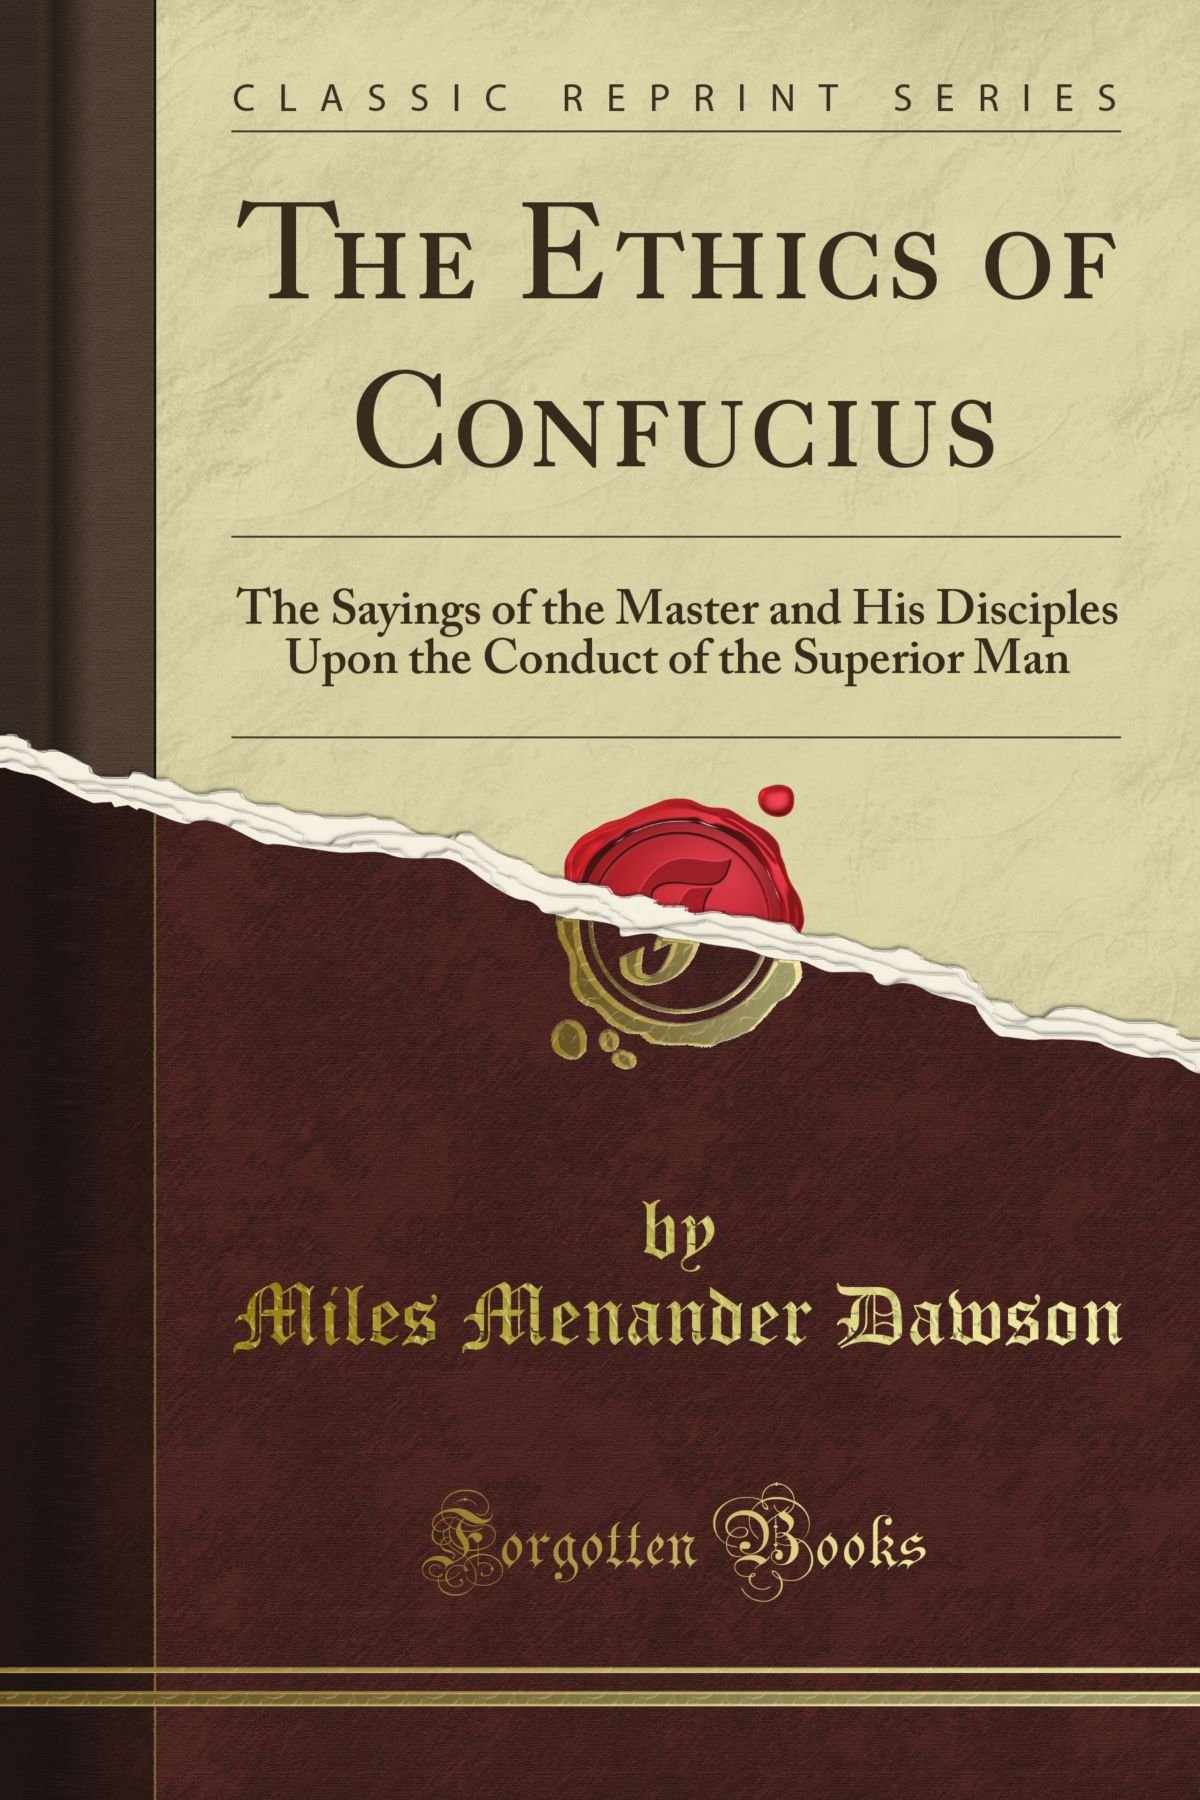 The Ethics of Confucius: The Sayings of the Master and His Disciples Upon the Conduct of the Superior Man (Classic Reprint) pdf